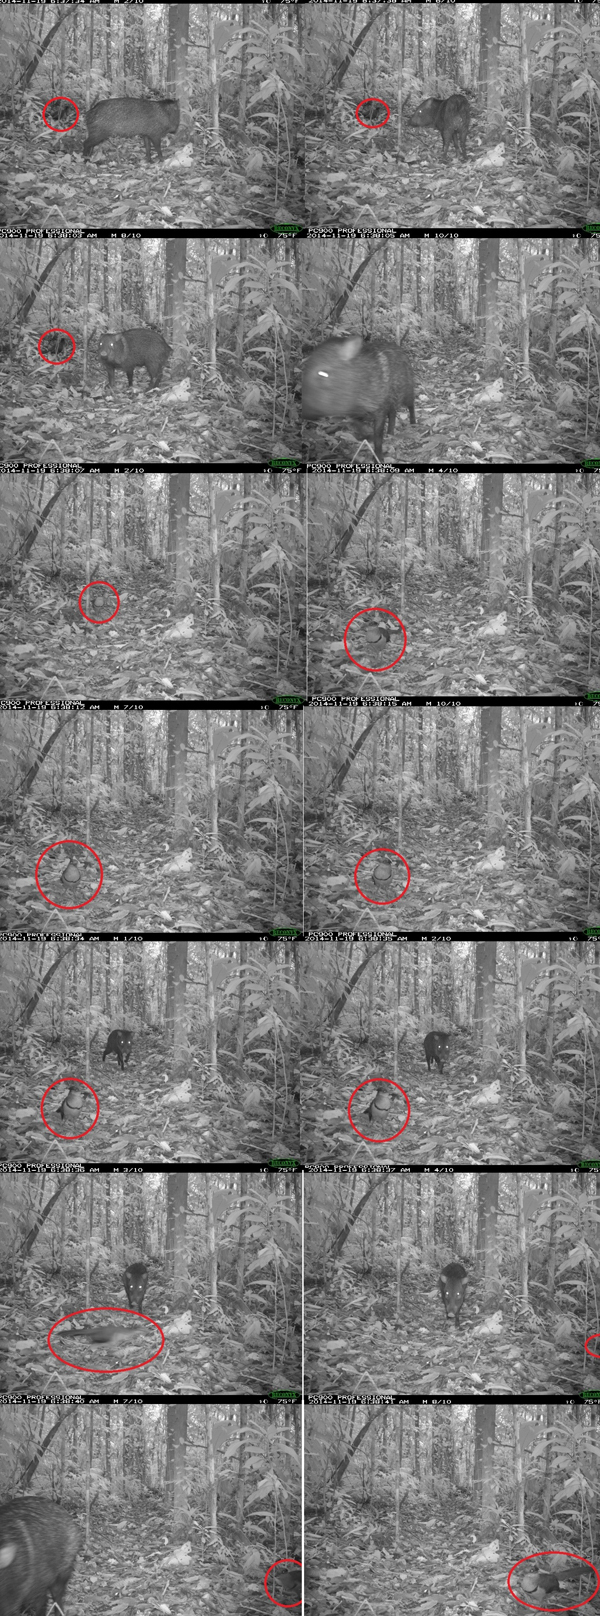 Series of camera trap photos showing relationship between rufous-vented ground cuckoo and collared peccaries. Photo courtesy of Renzo Piana.